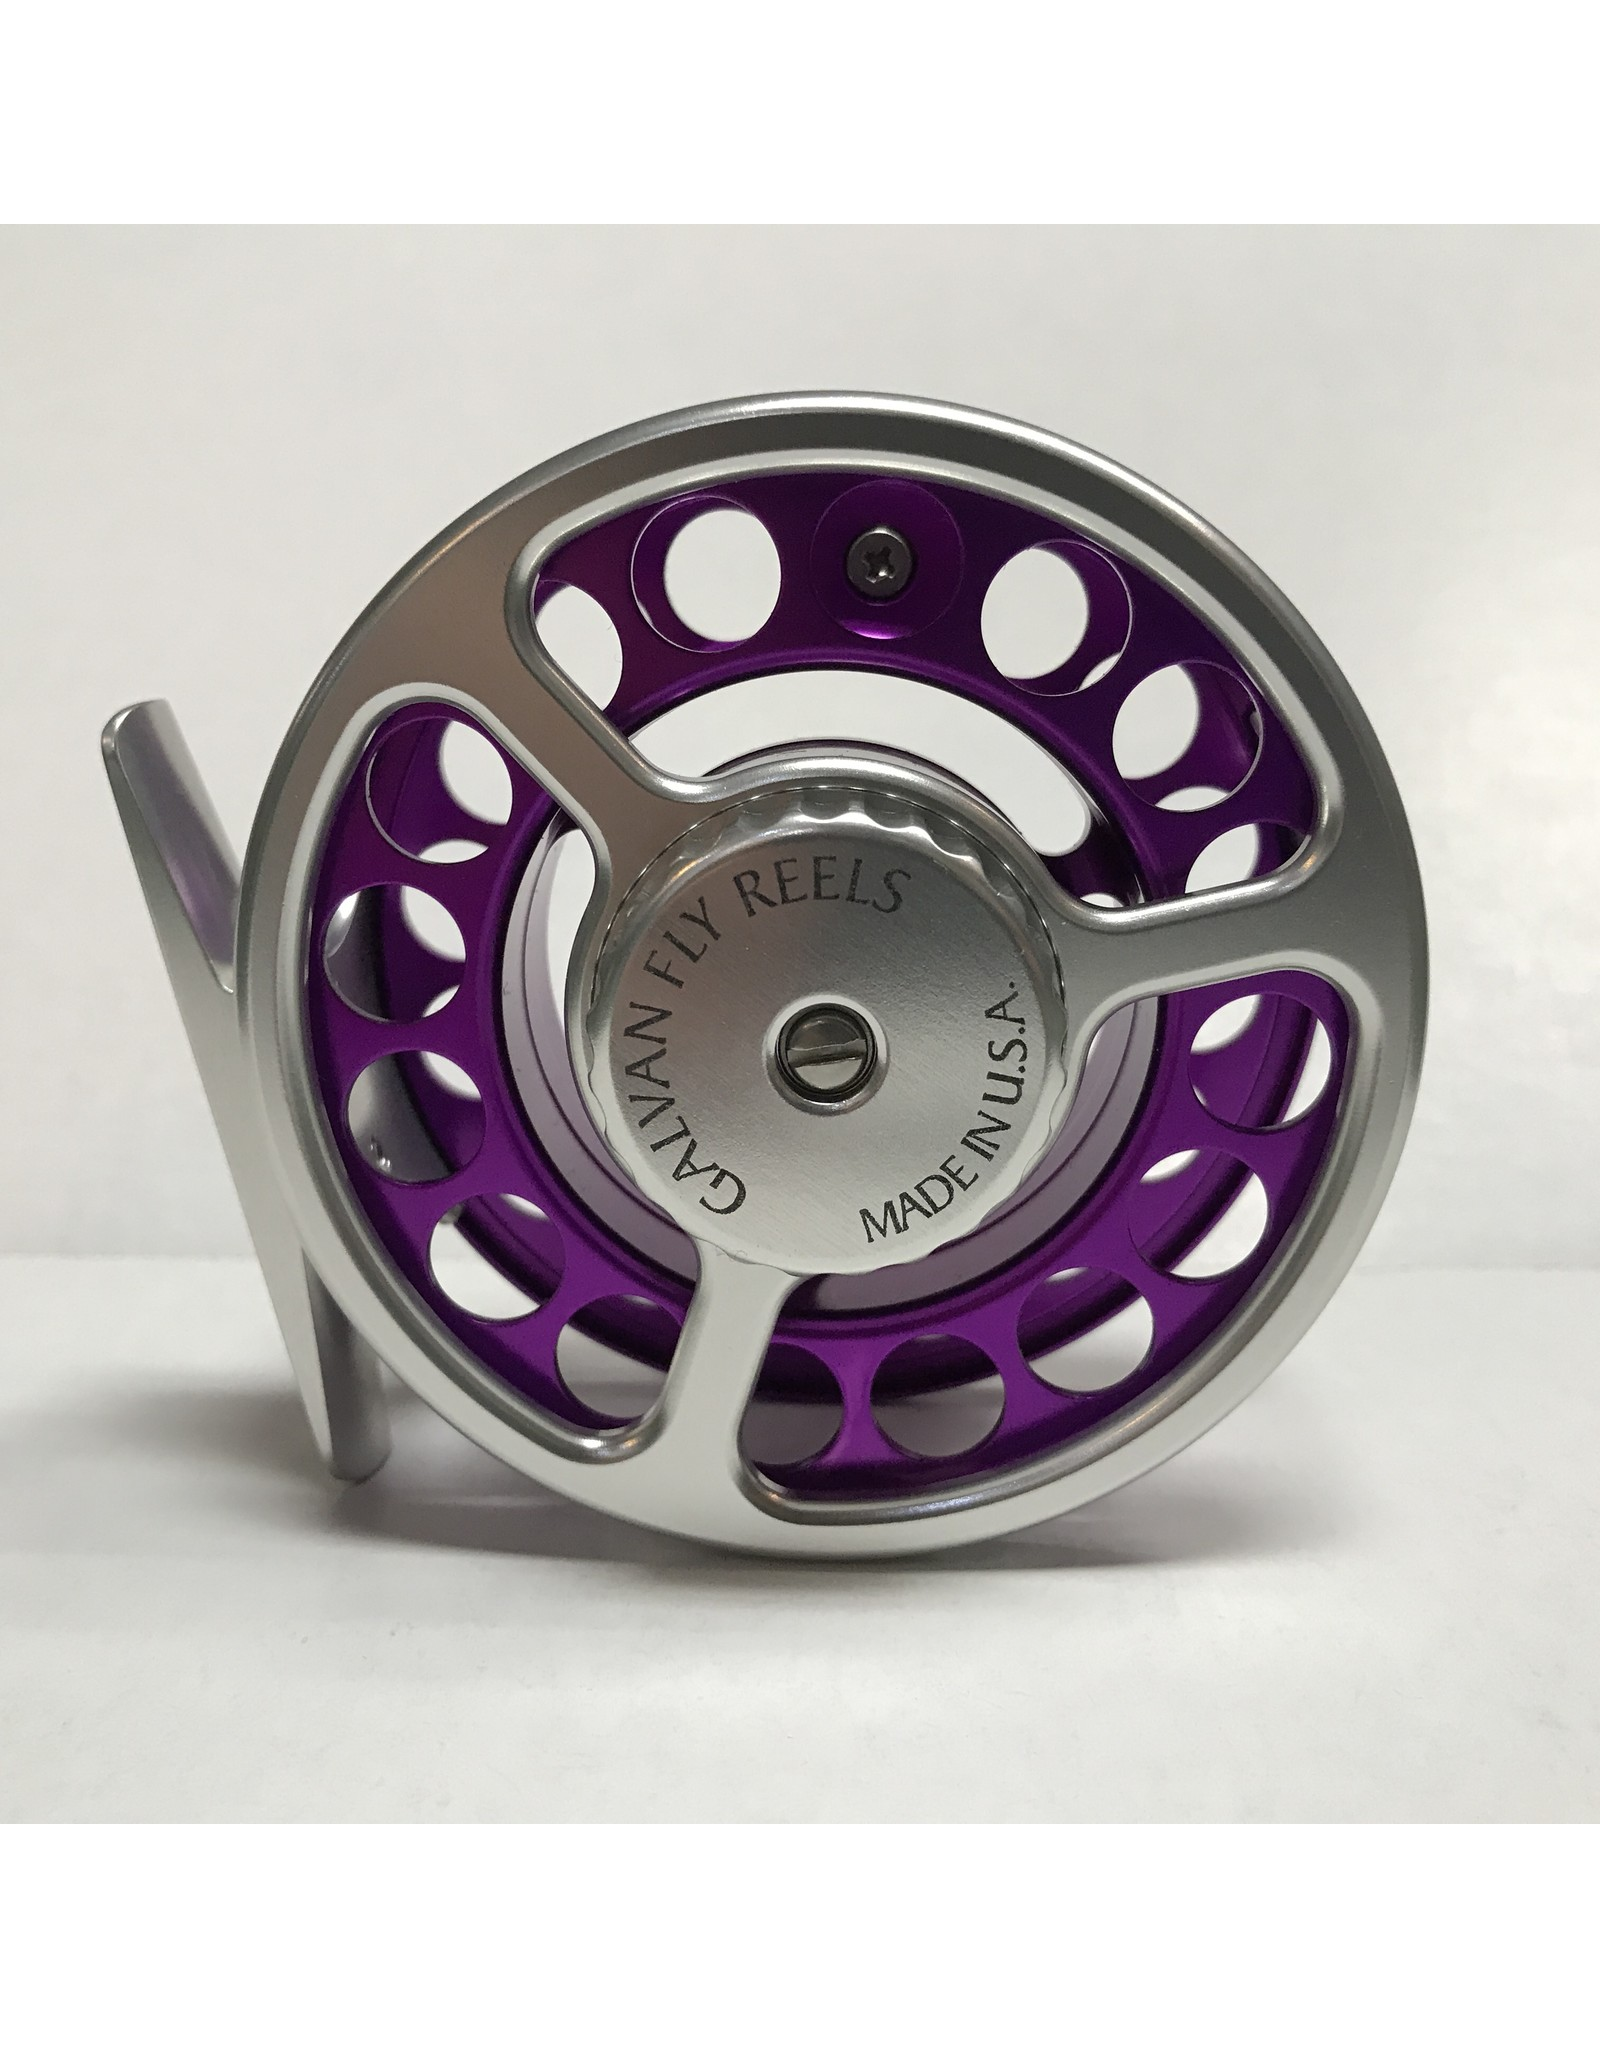 Galvan Reels Galvan - Rush Light Reel